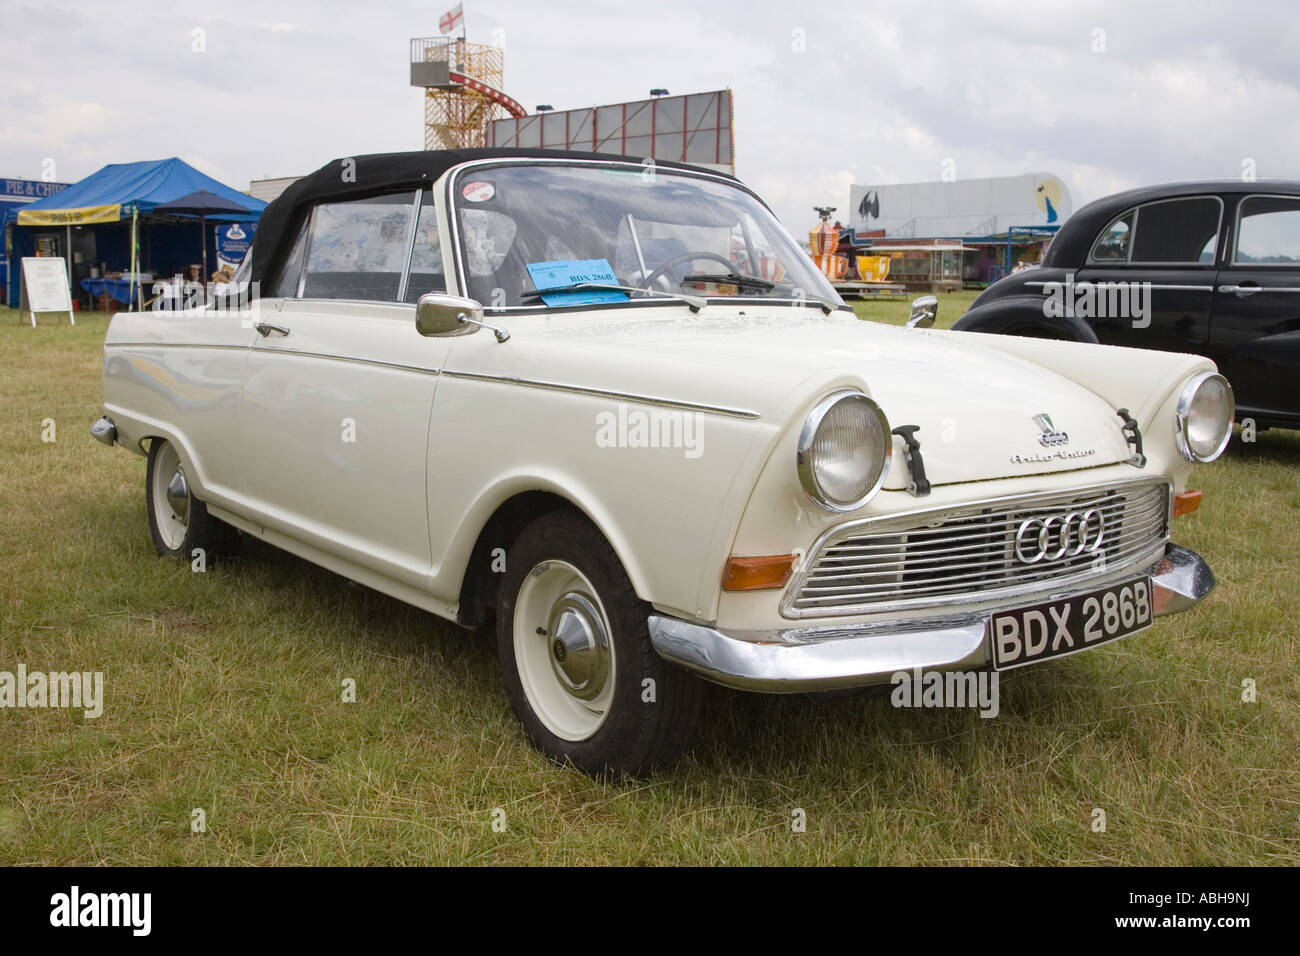 old classic Auto Union / Audi car on display at a car rally / show ...